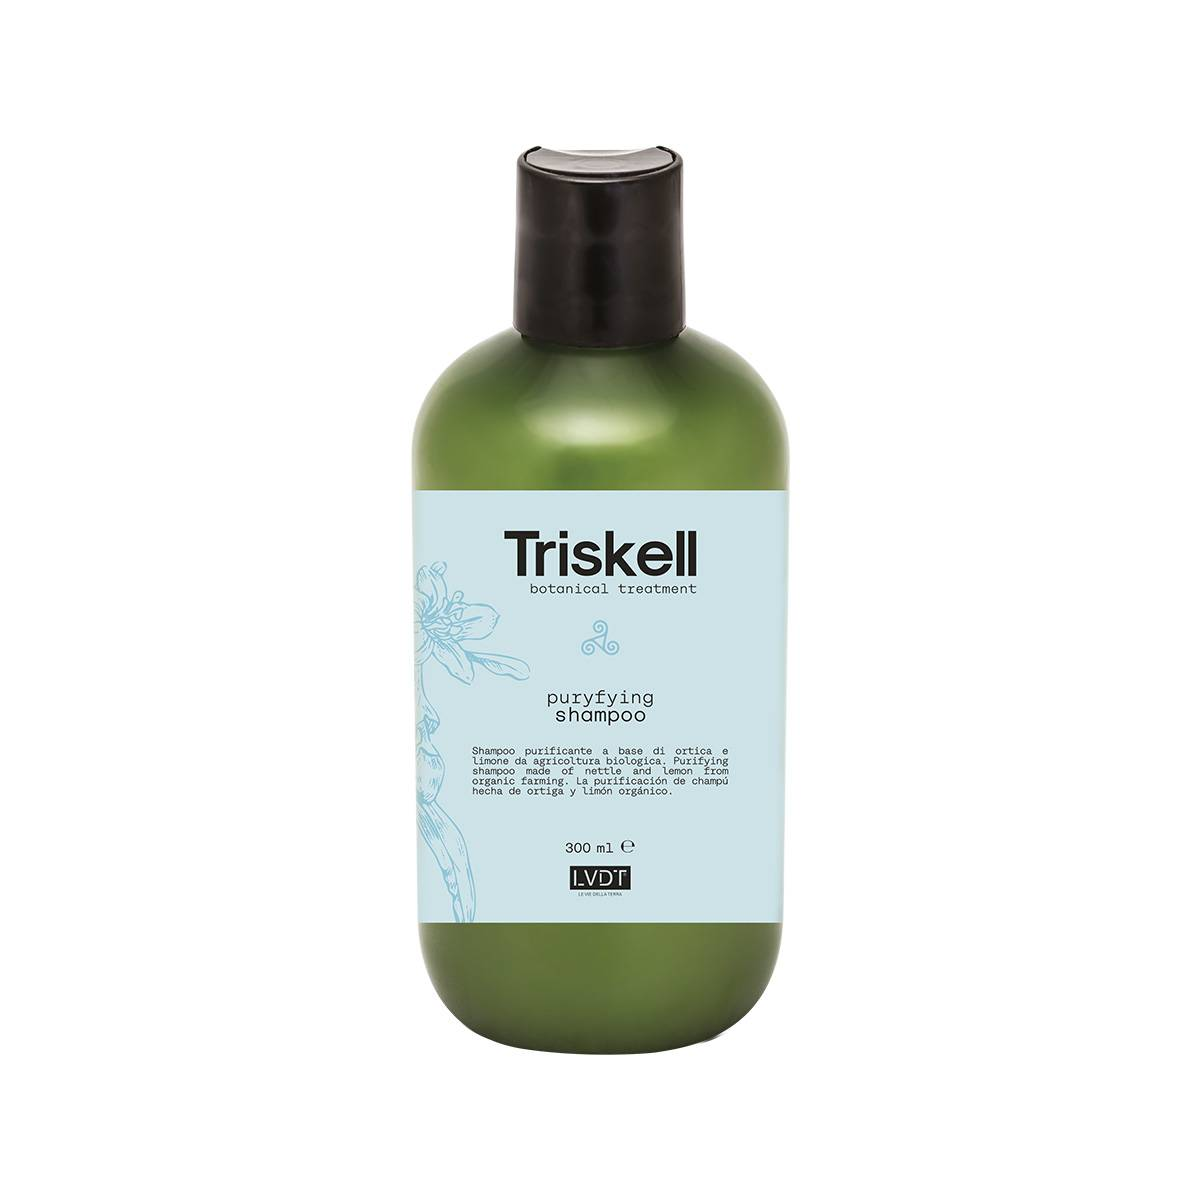 Purifyng Shampoo 300 Ml New Triskell Nuova Botanical Treatment